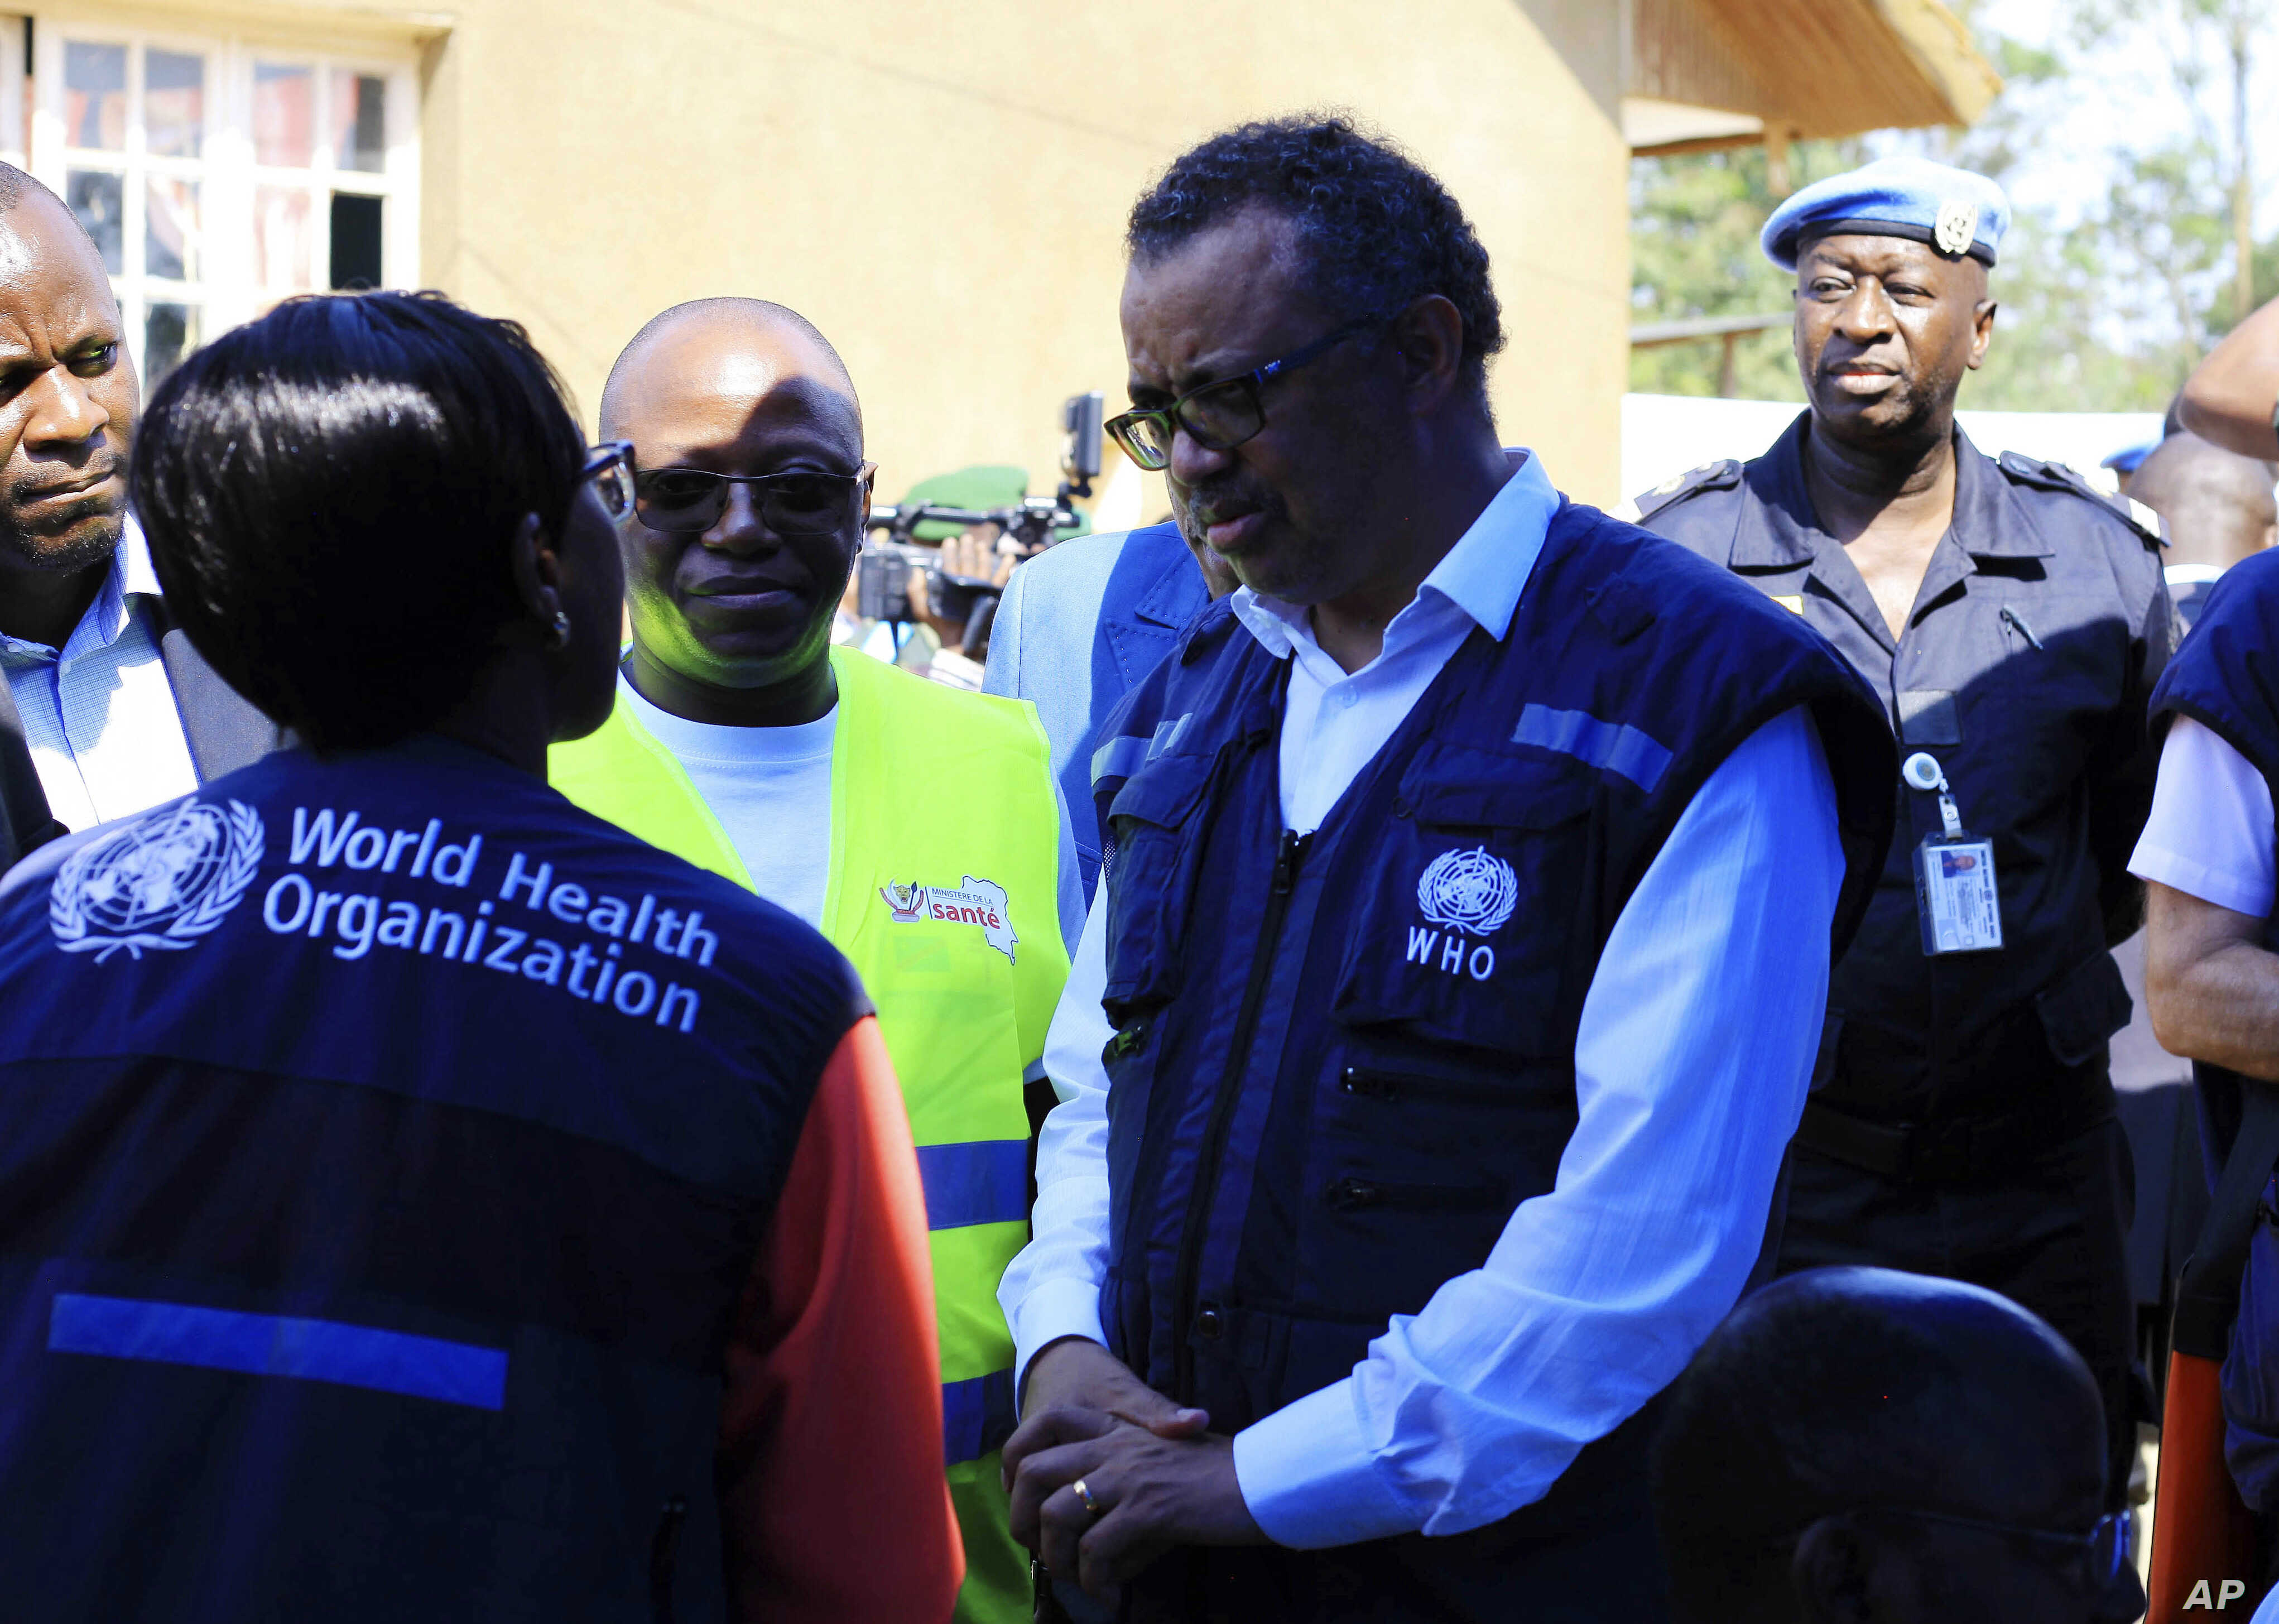 Dr. Tedros Adhanom Ghebreyesus, WHO Director General, centre, speaks to a health official at a newly established Ebola response center in Beni, Democratic Republic of Congo, Friday, Aug. 10, 2018.